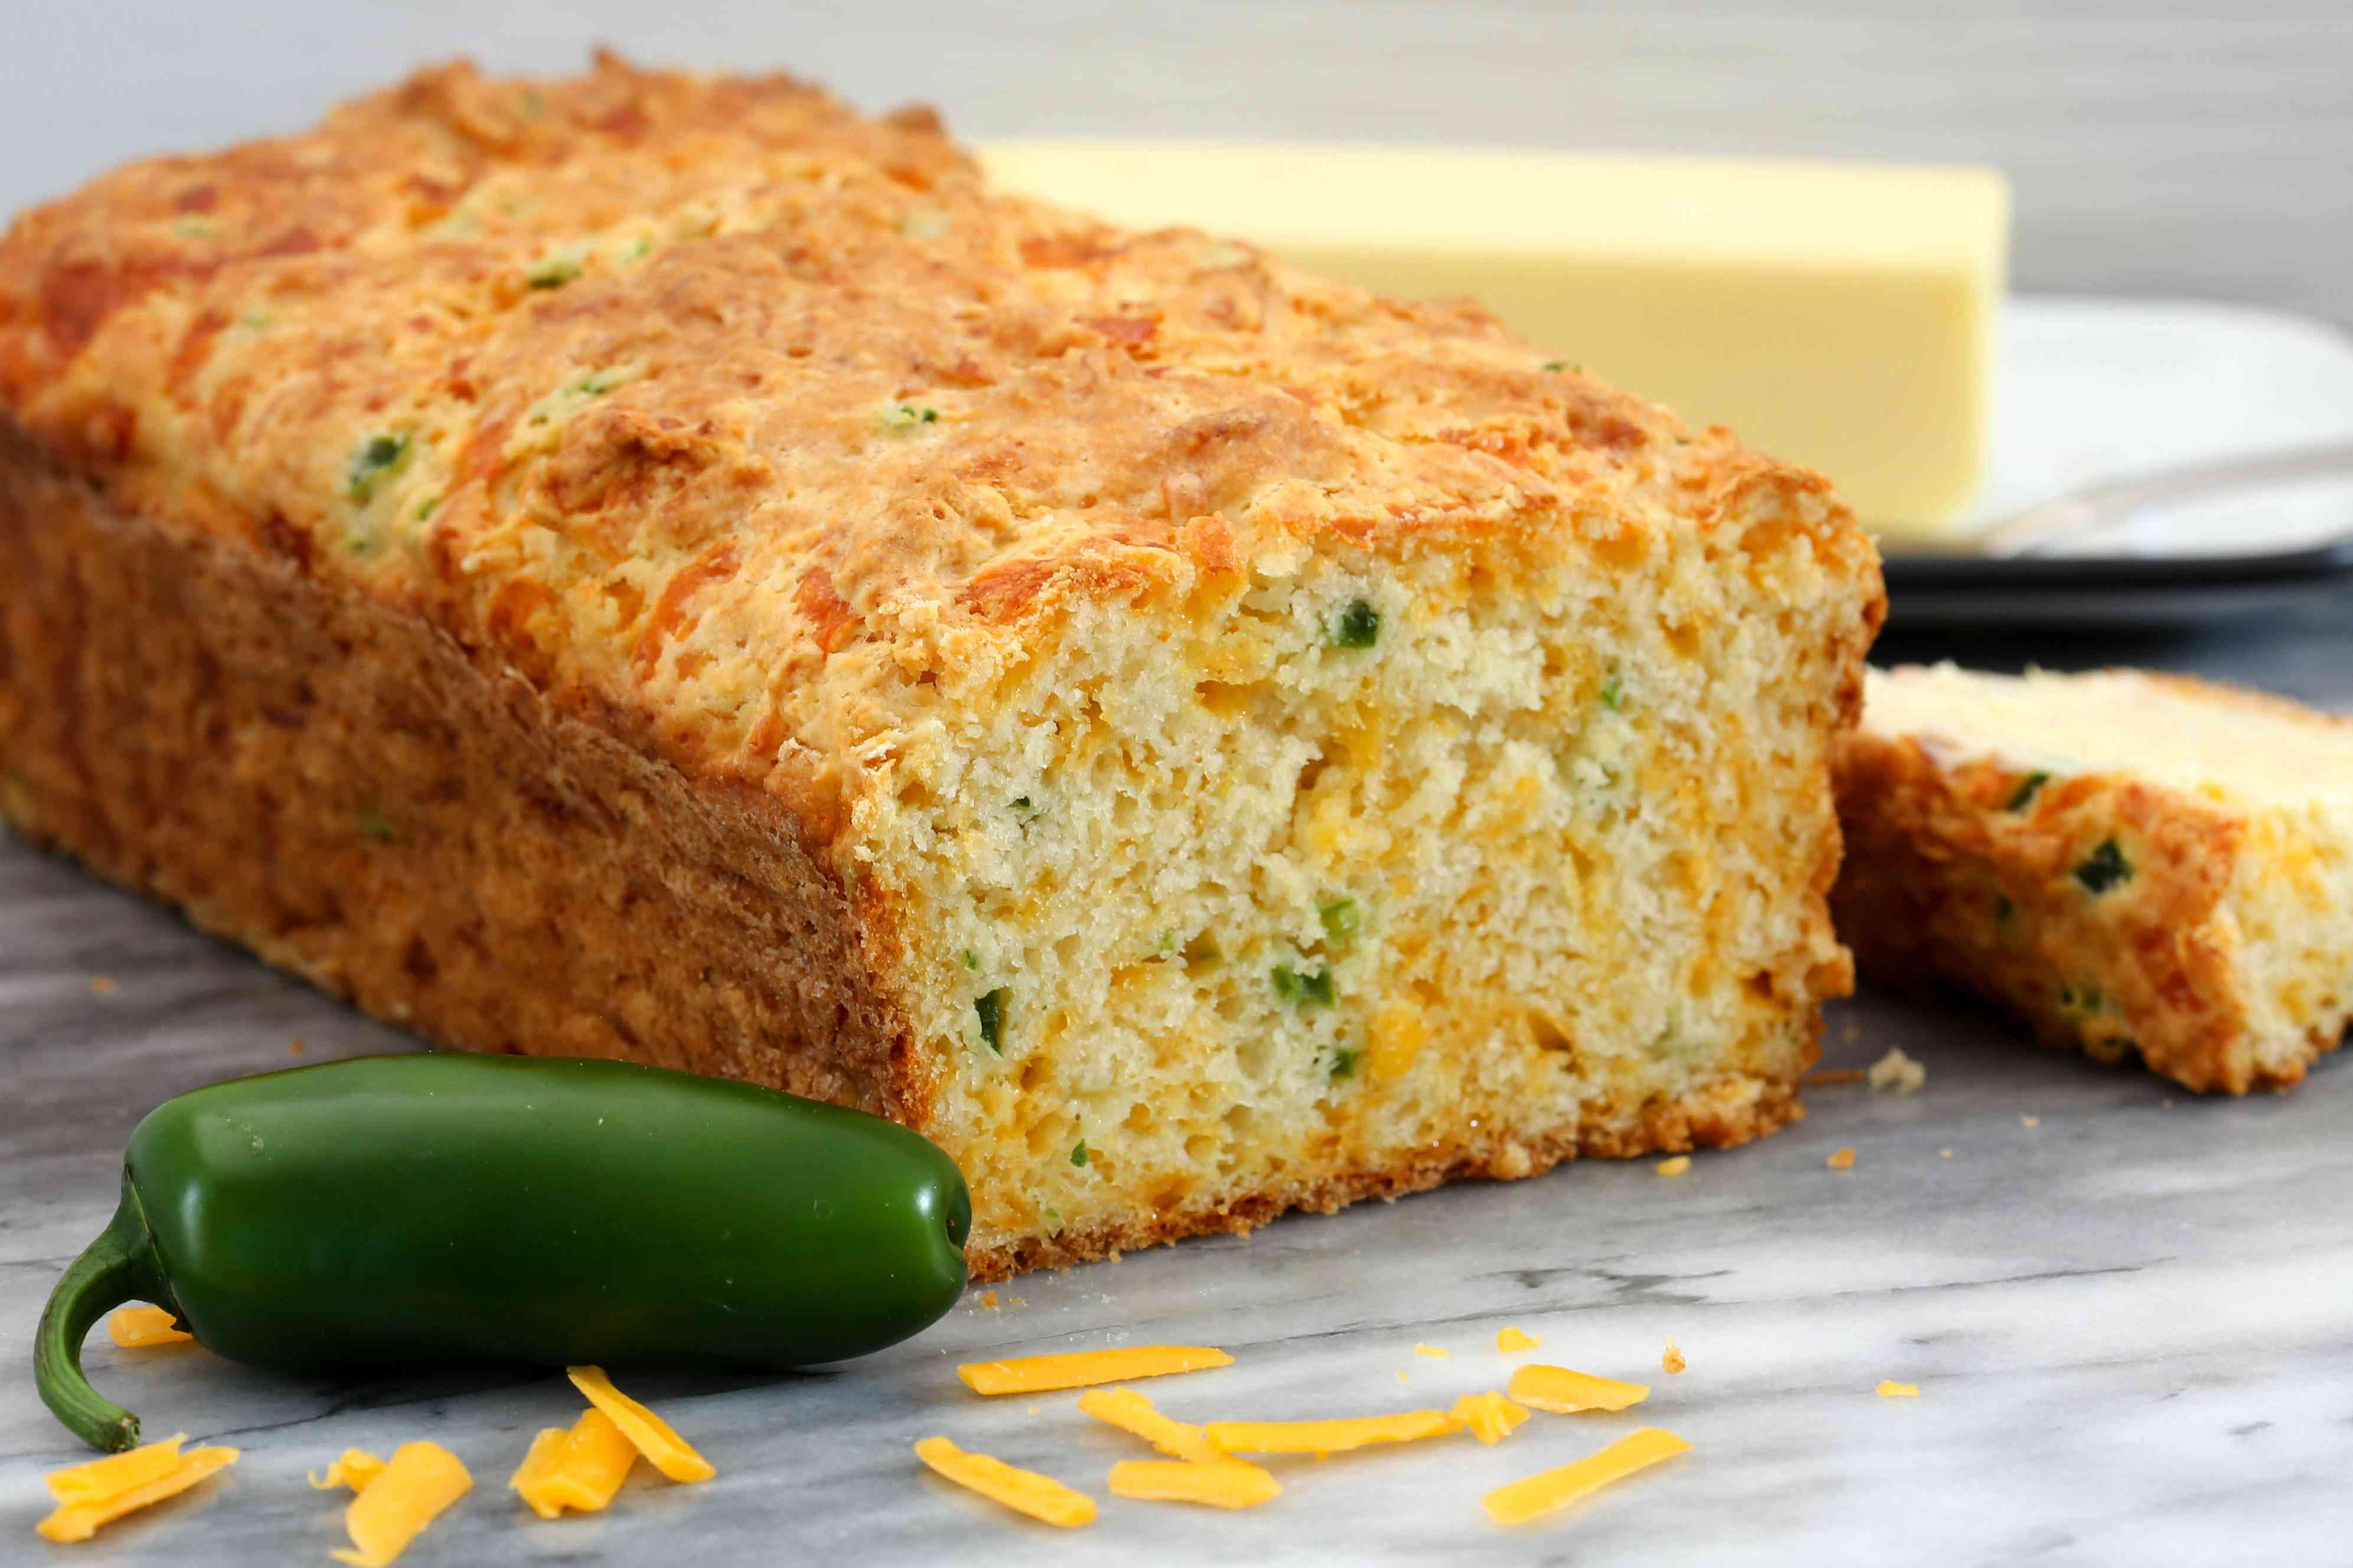 Jalapeño and cheddar cheese quick bread, sliced